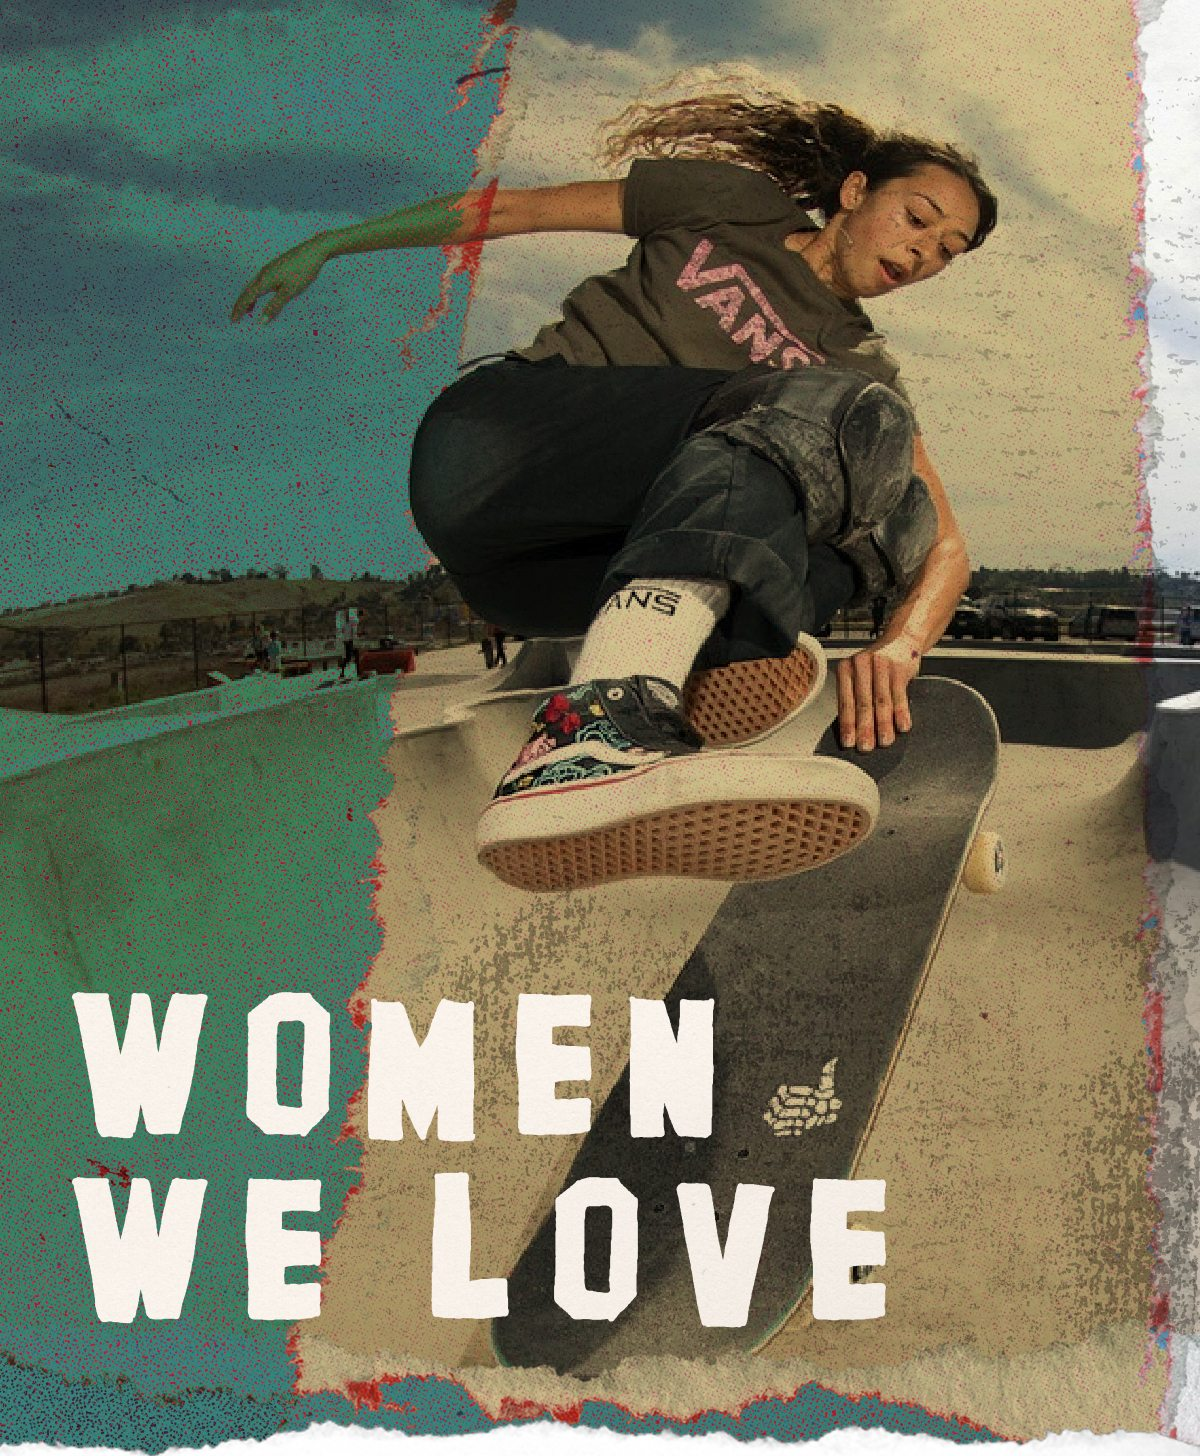 Women we love - Find out more